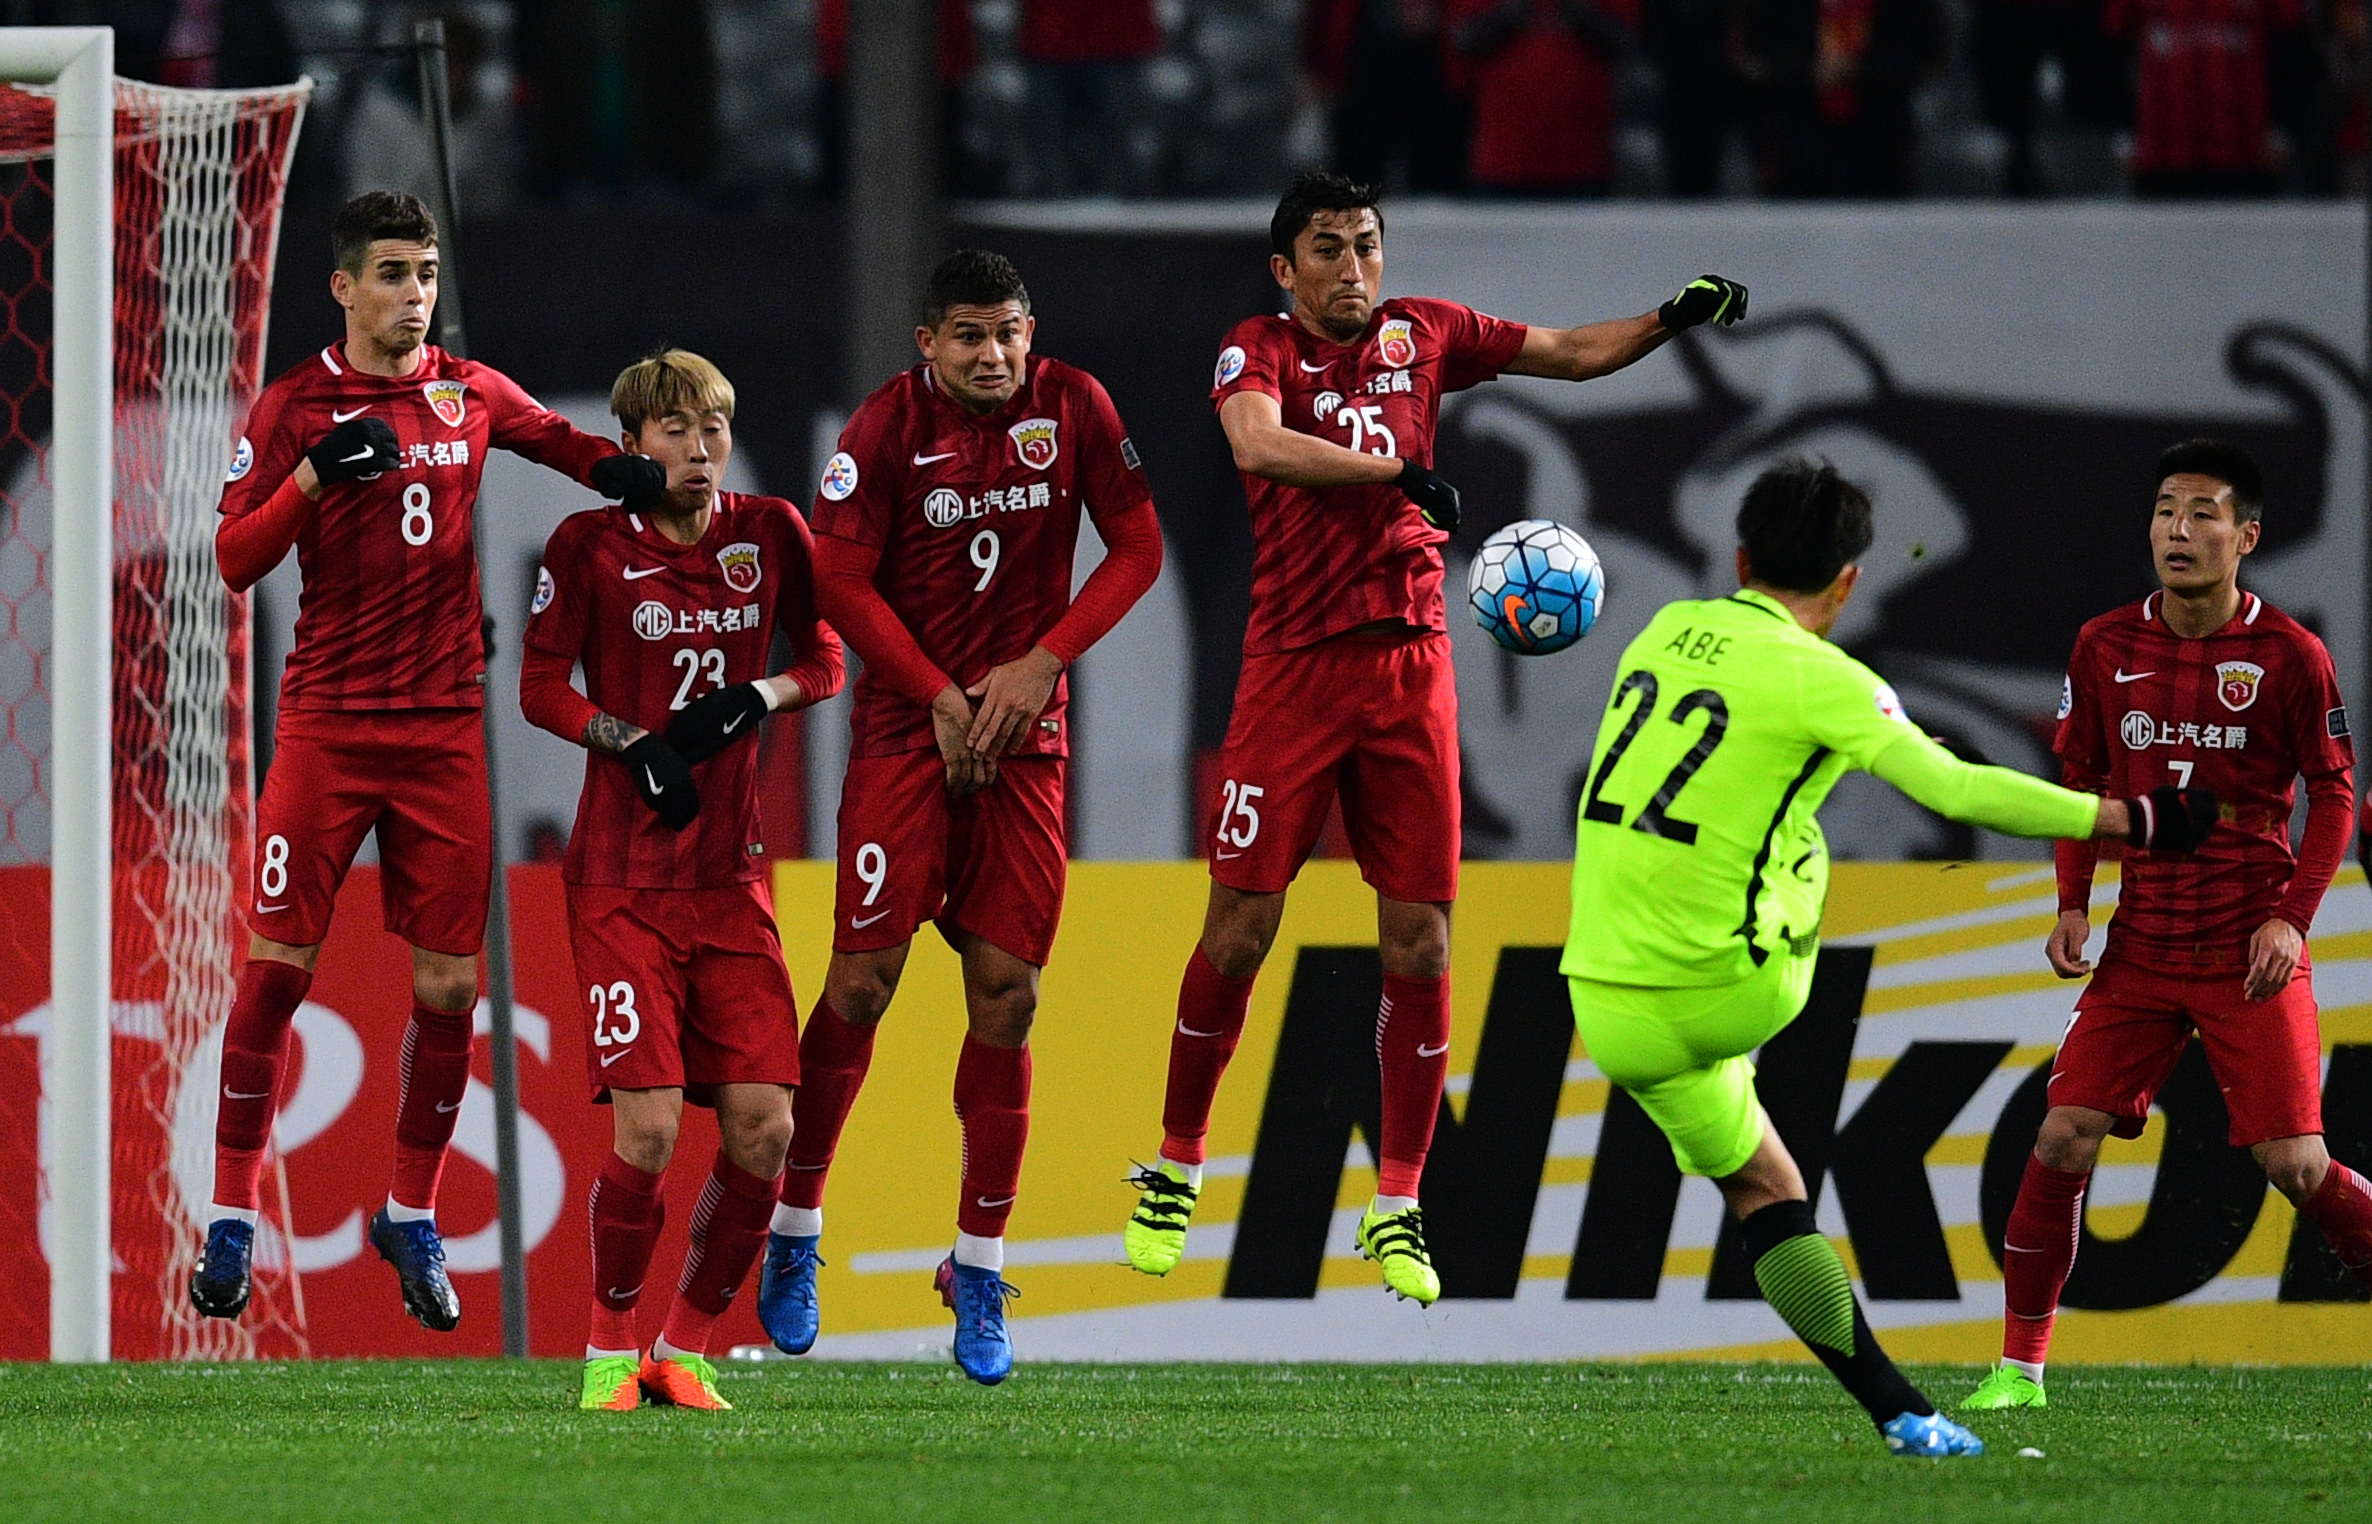 Shanghai SIPG vs Urawa Red Diamonds